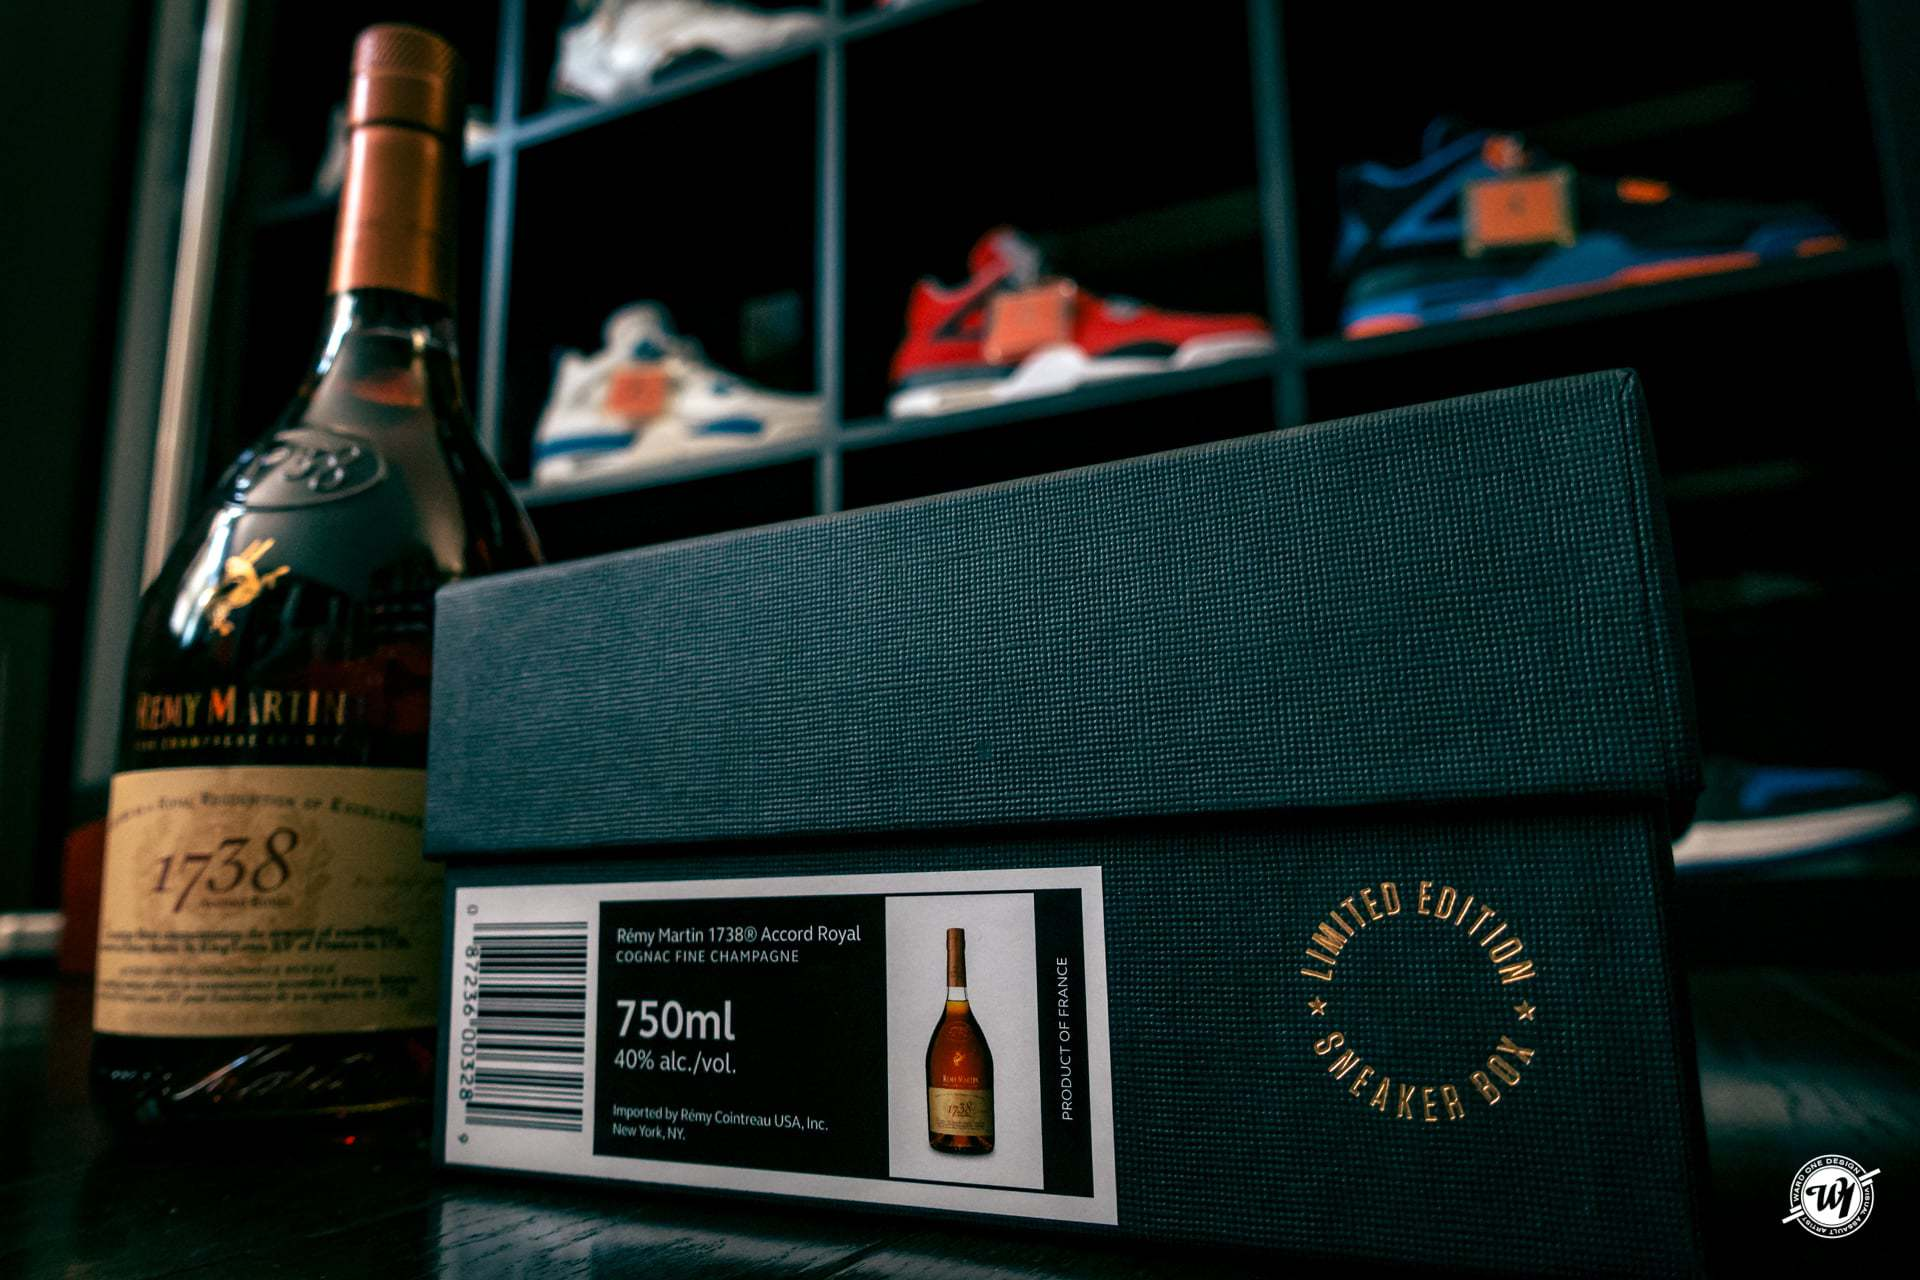 1738 Accord Royal • Sneakerbox Edition photography